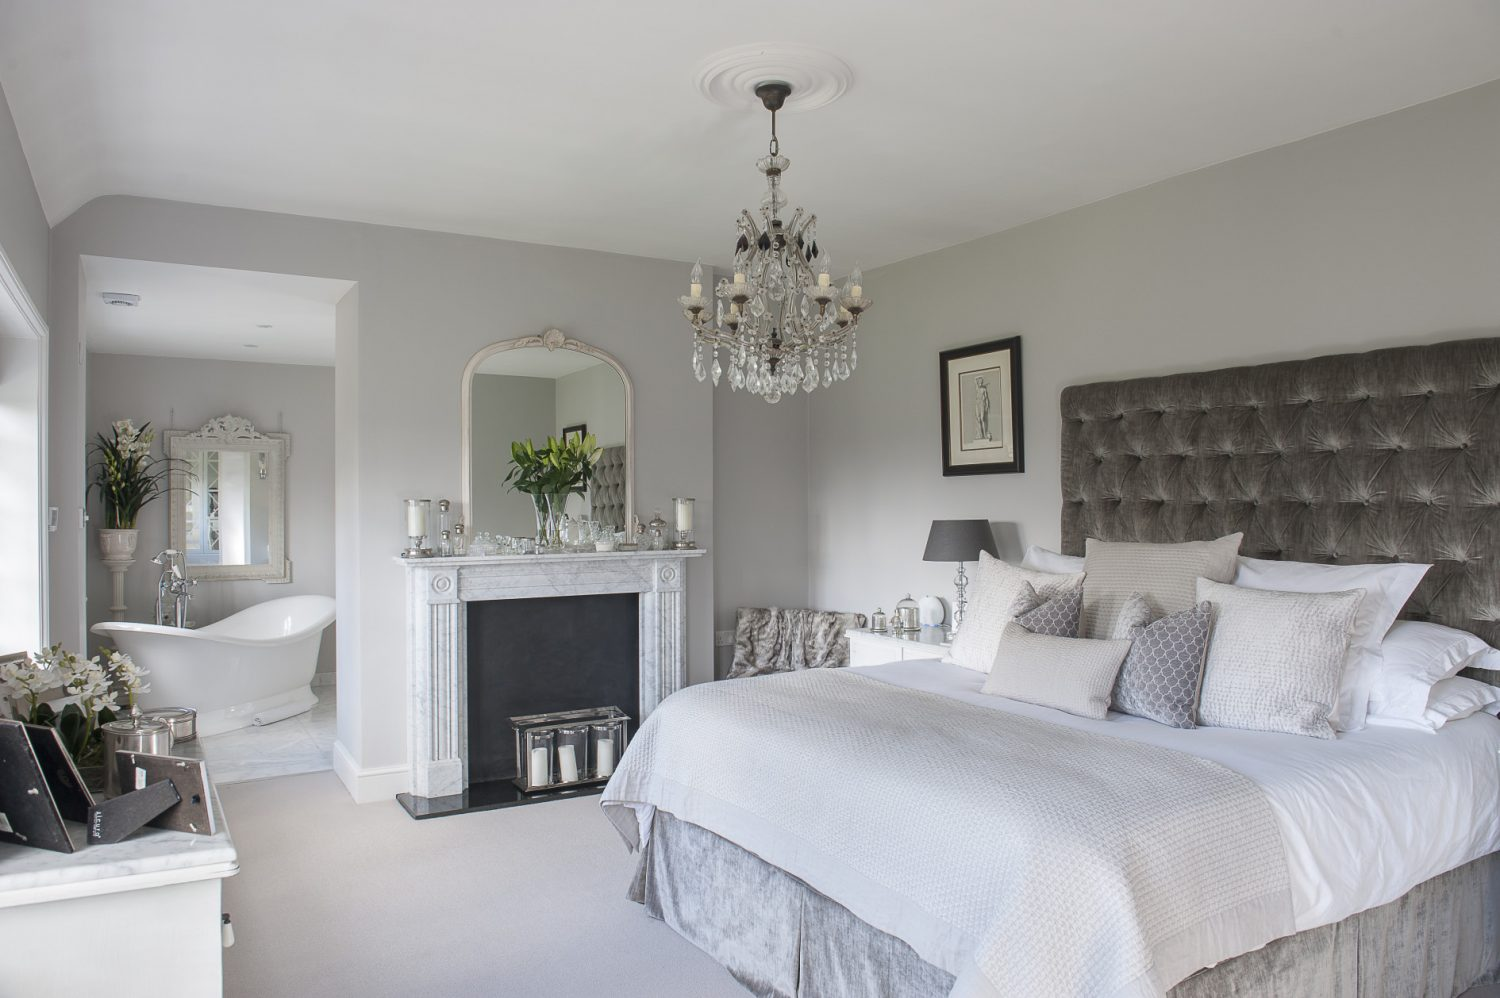 The master suite, painted in Little Greene's French Grey comprises three rooms that feel wonderfully luxurious; the bedroom, dressing room and bathroom